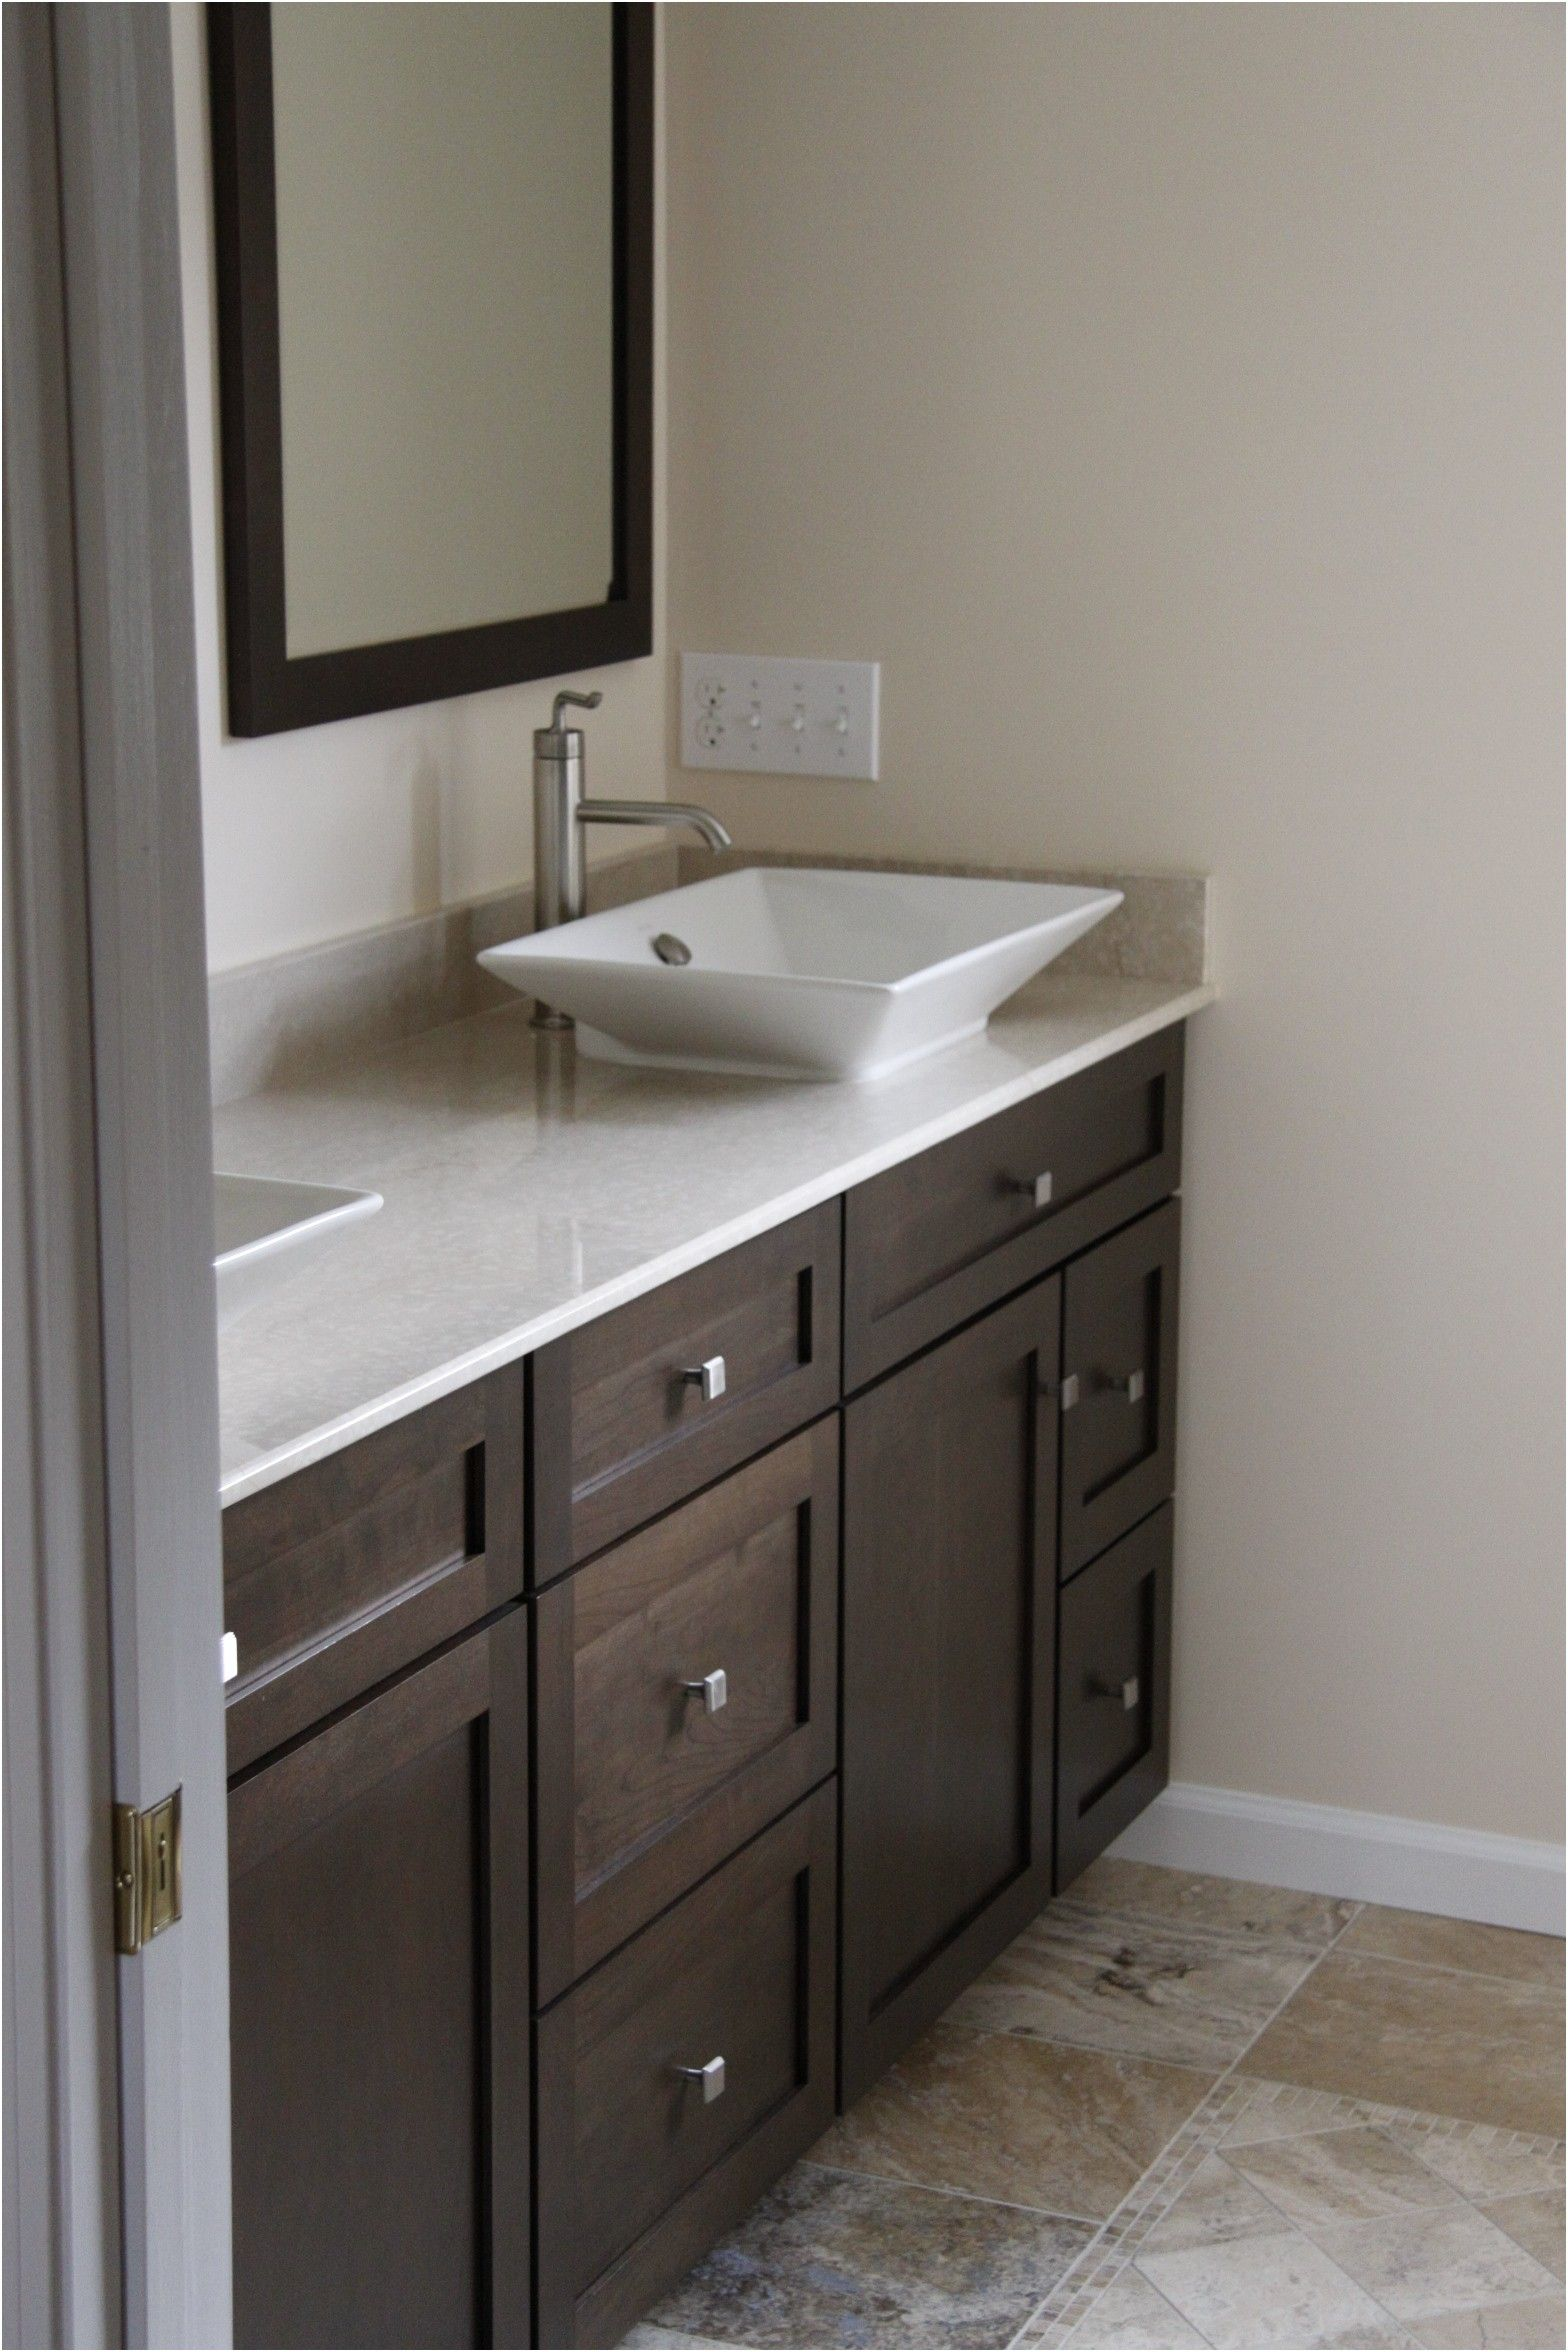 Dynasty By Omega Kitchen Cabinets From Ragonese Kitchen And Bath From Omega  Bathroom Cabinets